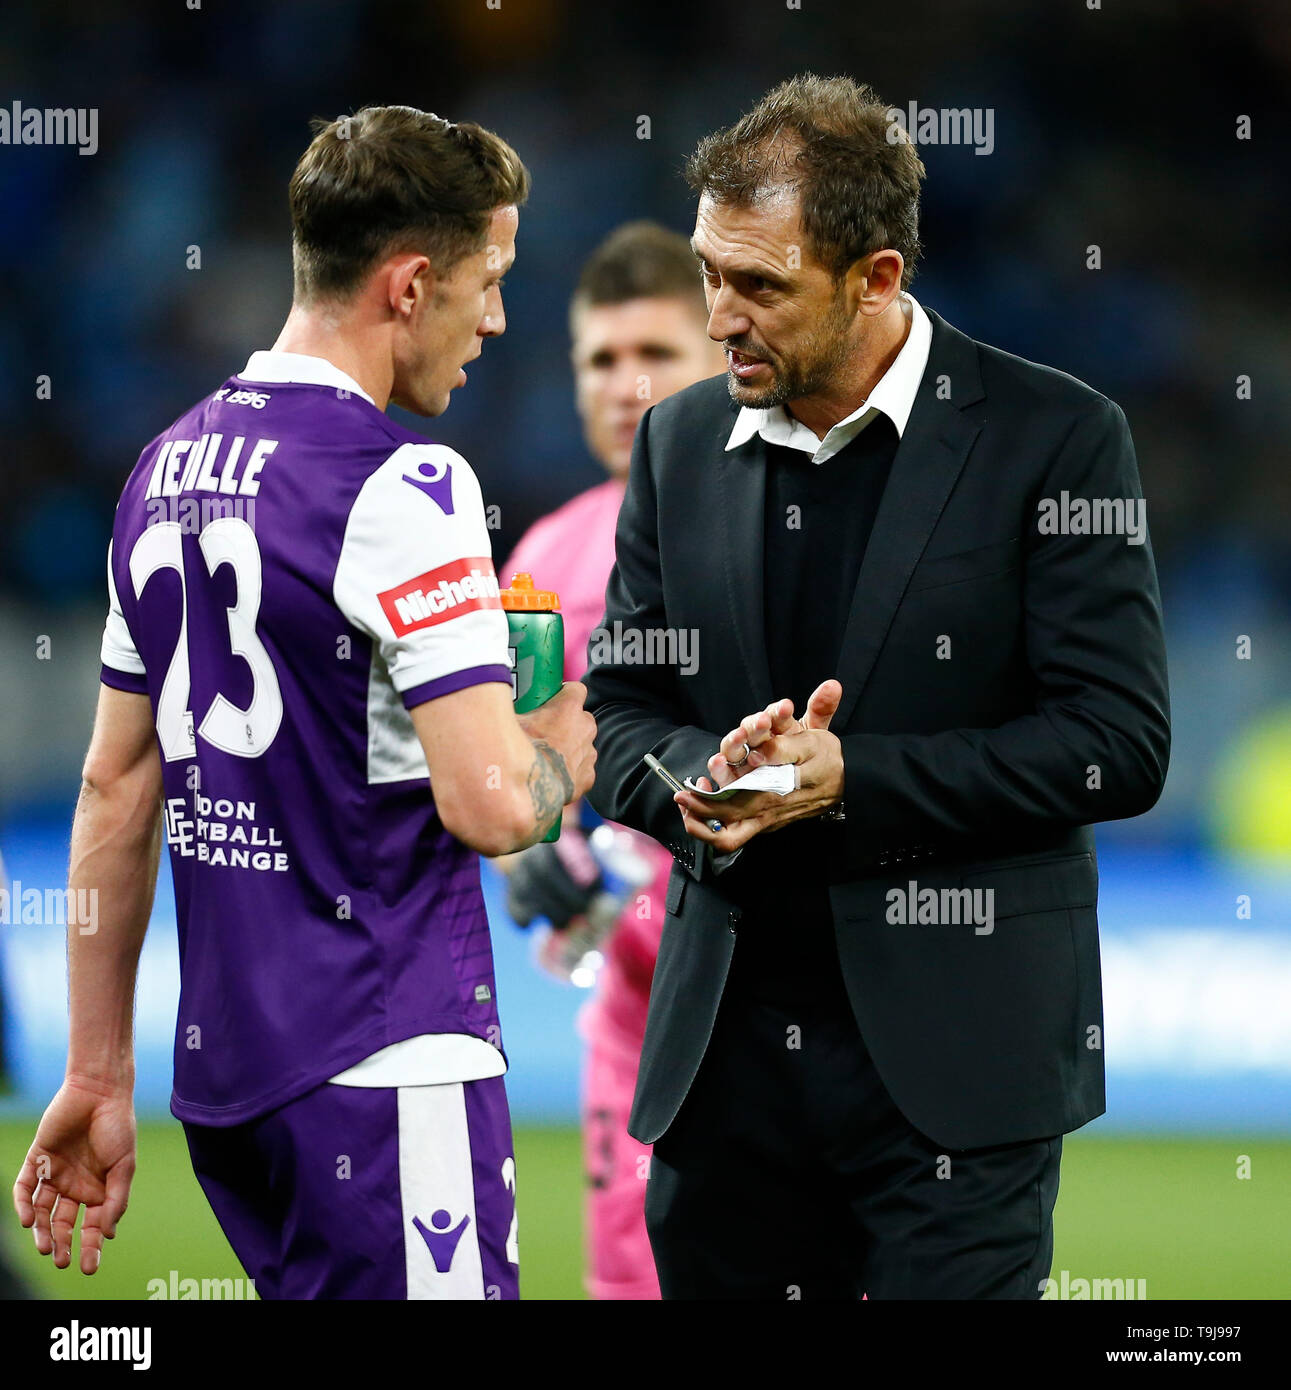 Perth Stadium, Perth, Australia. 19th May, 2019. A-League grand final, Perth Glory versus Sydney FC; Tony Popovic head coach of Perth Glory talks with Scott Neville before the start of extra time Credit: Action Plus Sports/Alamy Live News - Stock Image